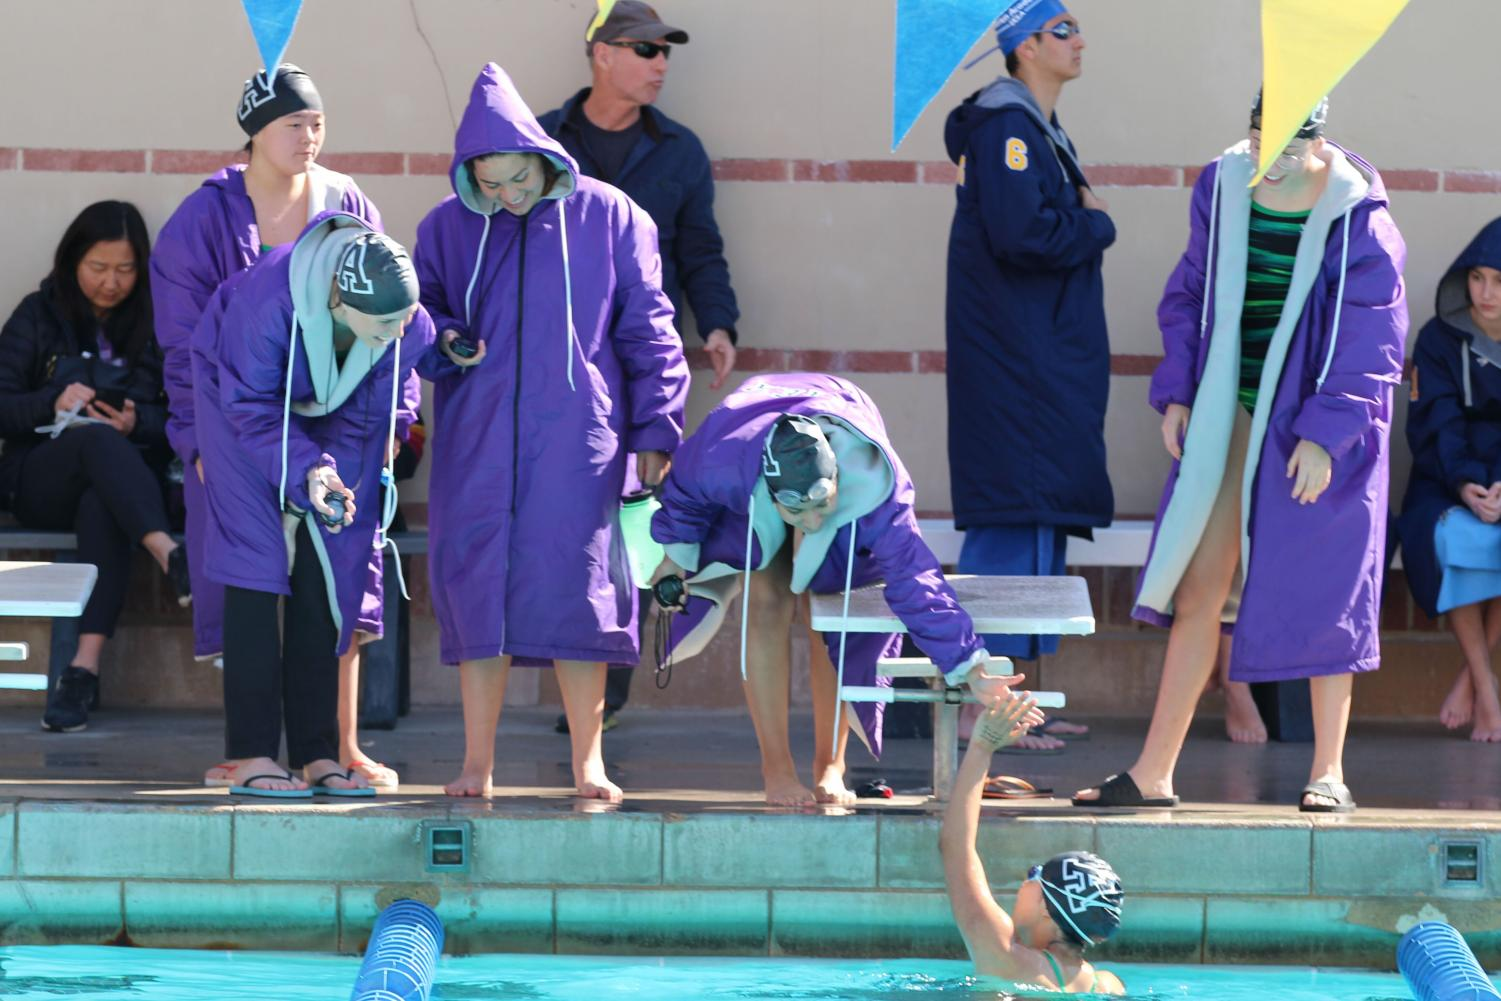 Members of the swim team high-five each other during their last meet before CIF finals. This year, the team qualified for CIF finals in three divisions, the 200 meter individual medley, the 200 meter freestyle and the 100 meter freestyle.